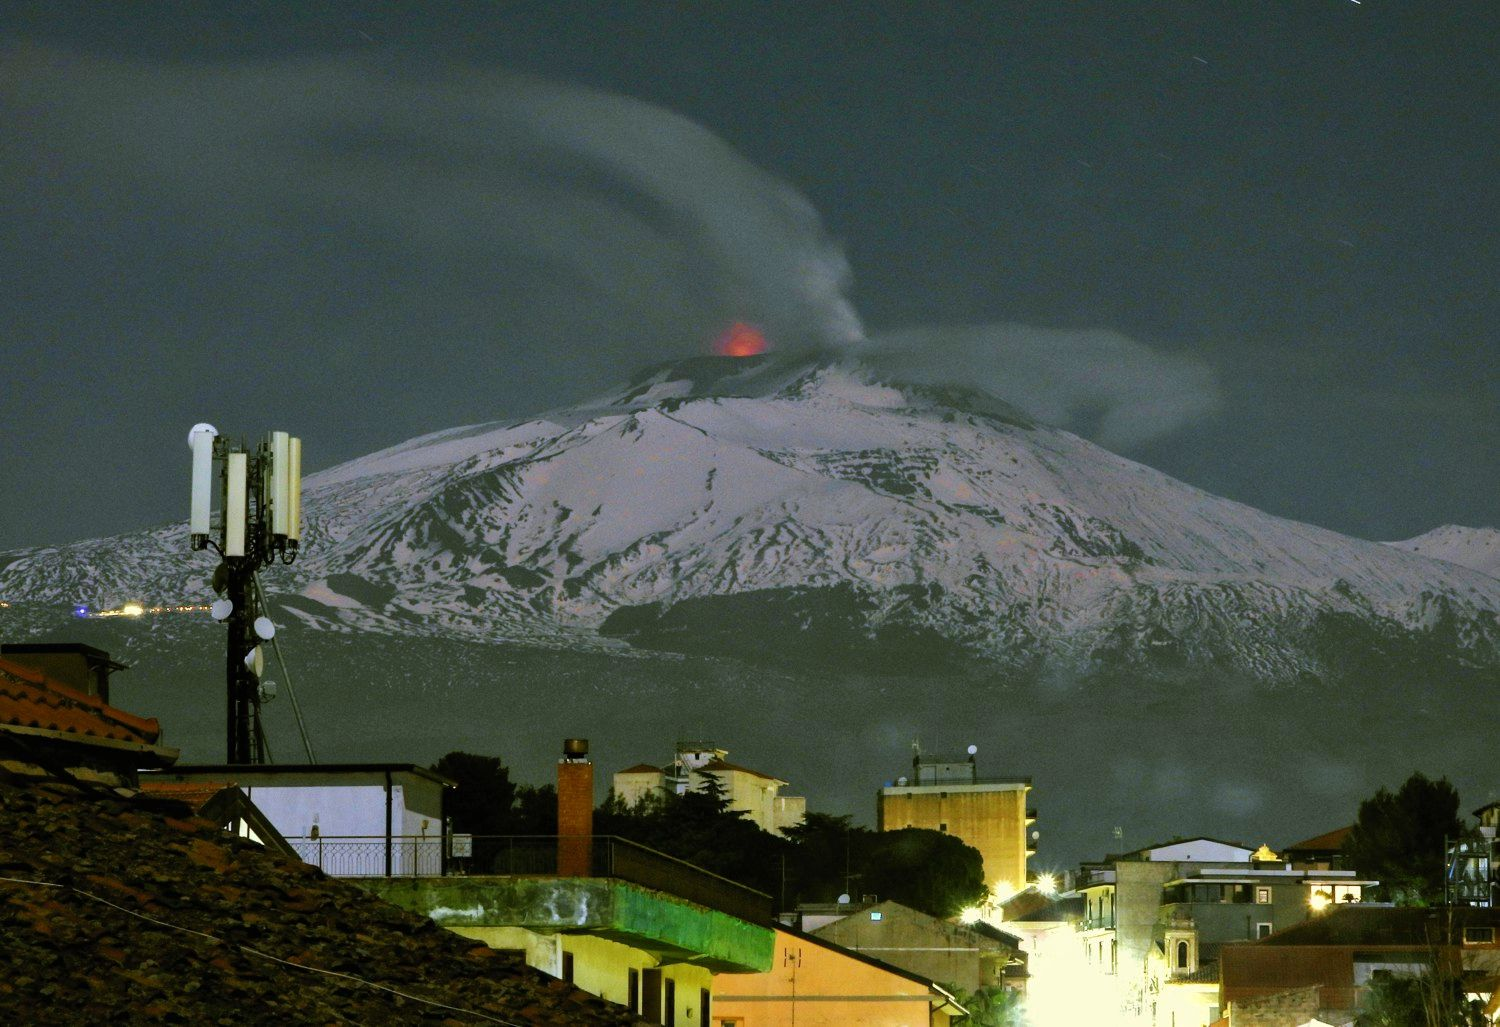 Etna photographed on the night of April 7 to 8 by Boris Behncke from Tremestieri Etneo